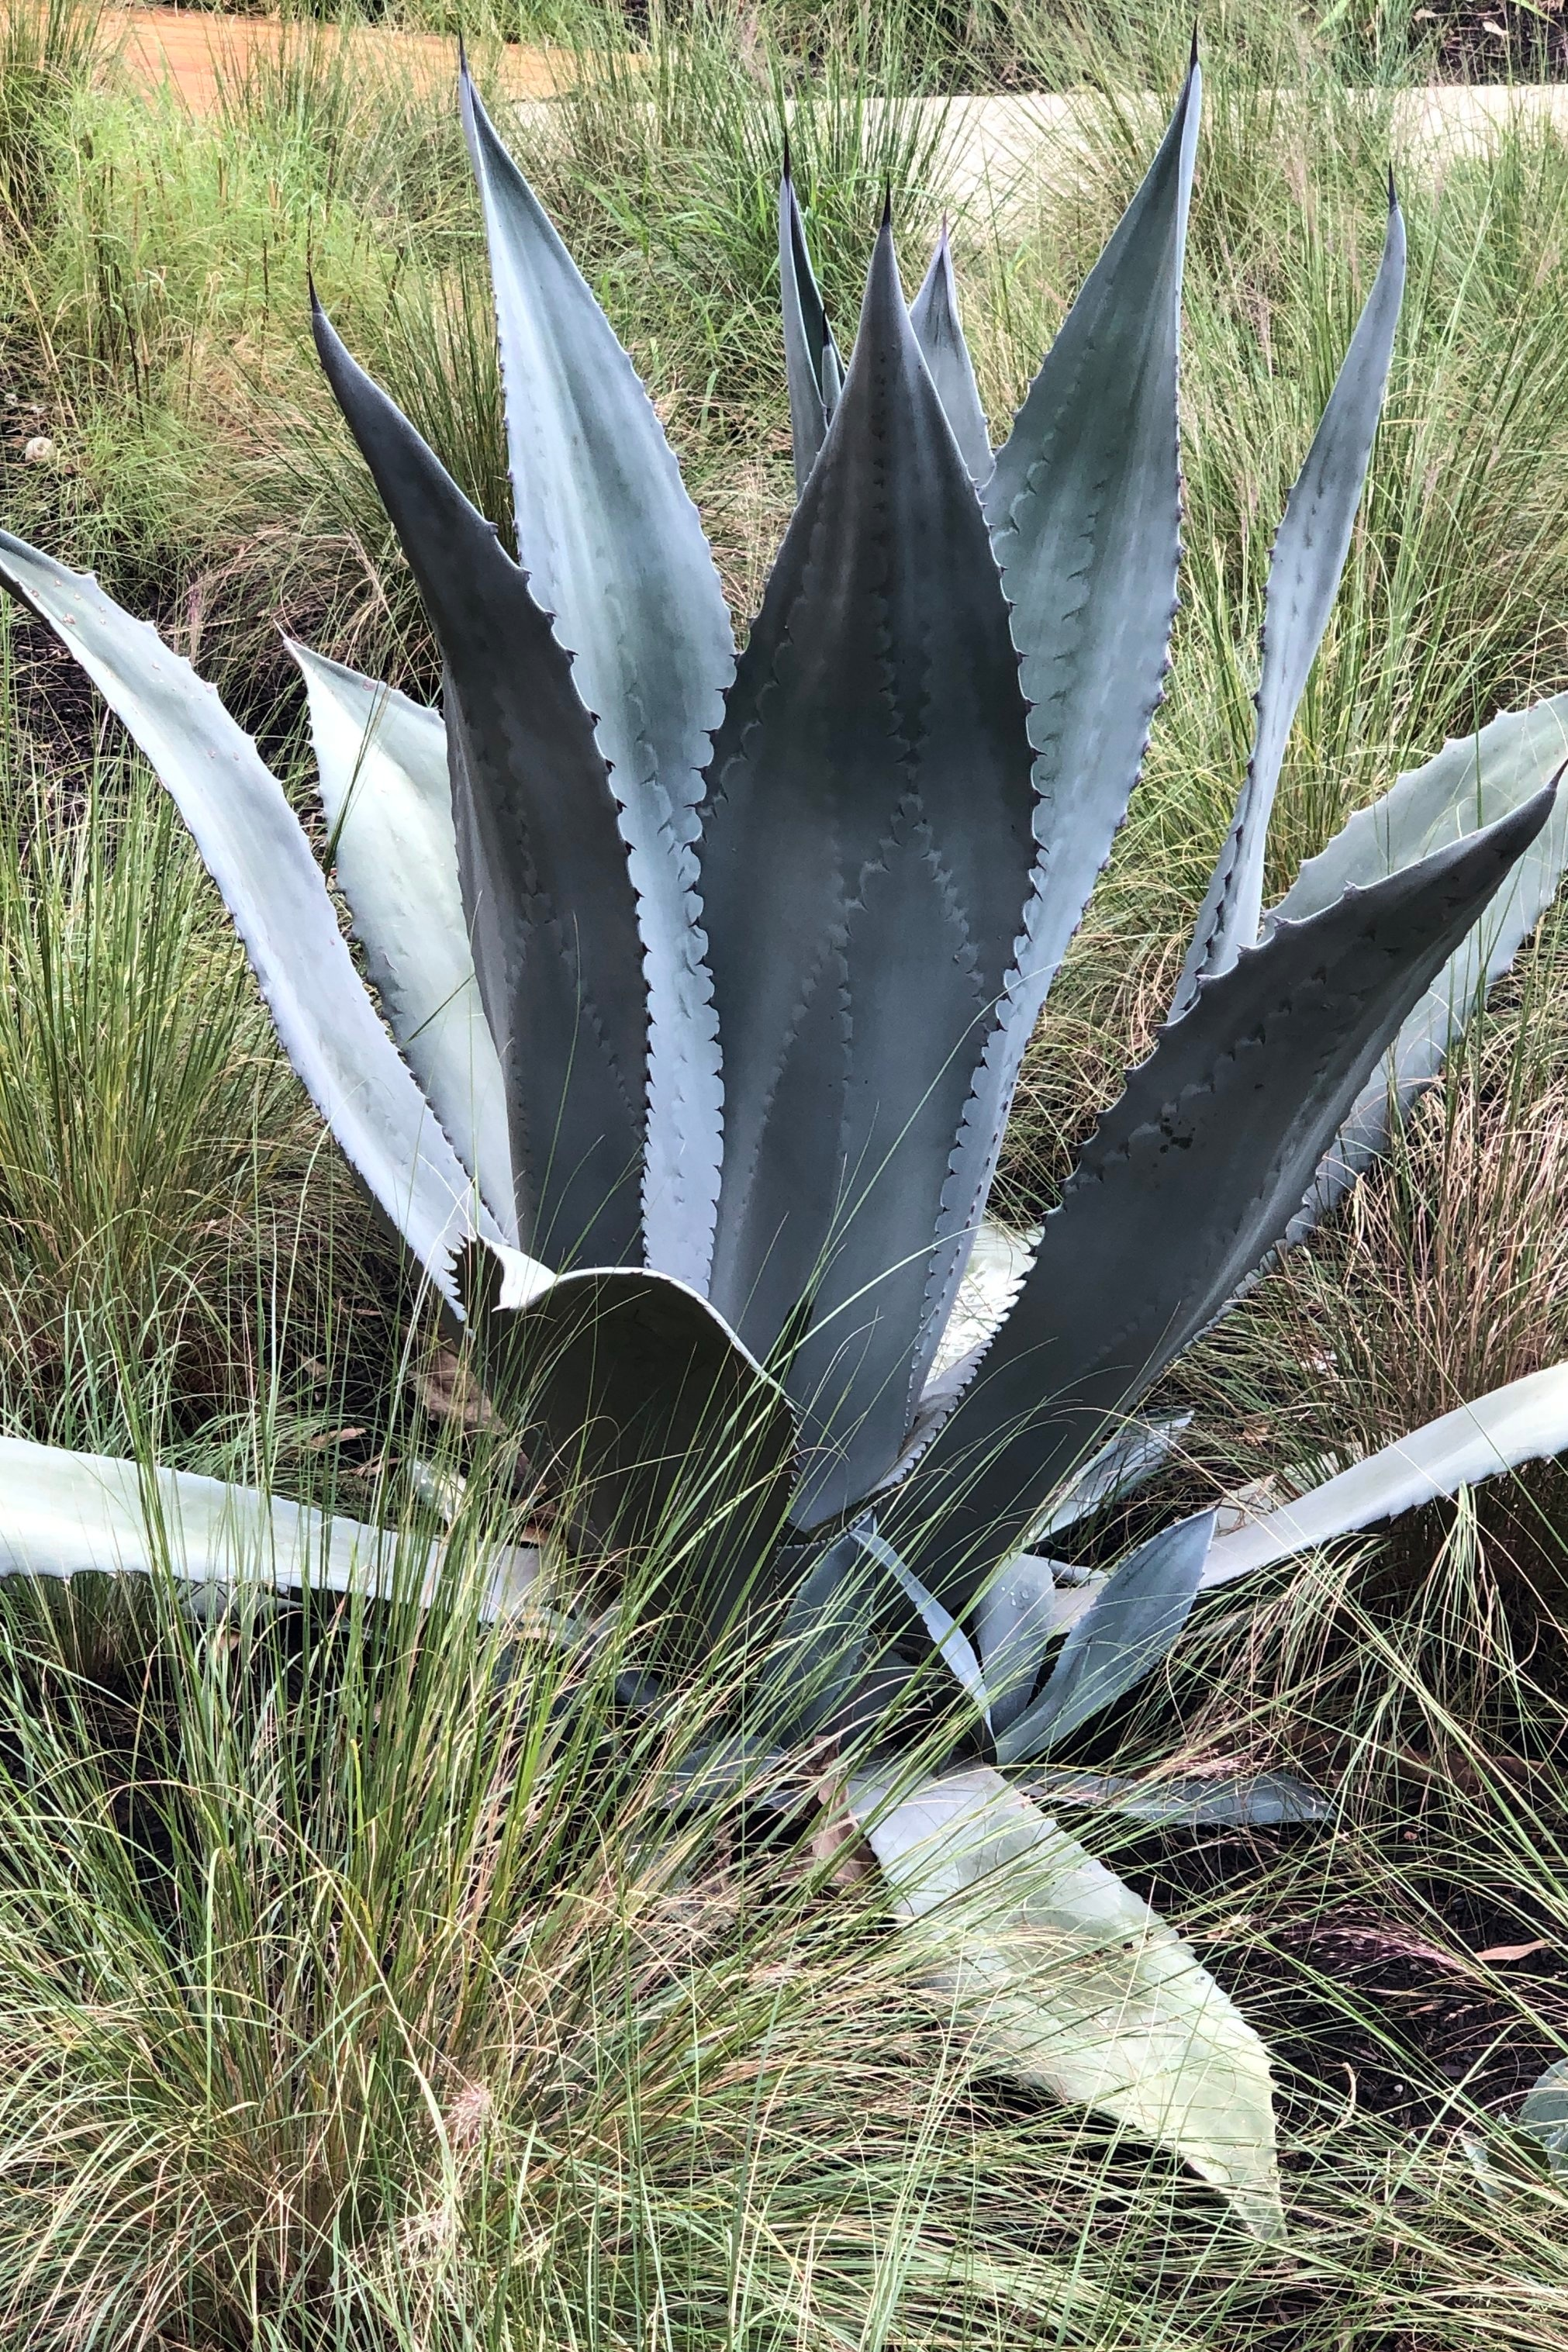 Is that agave?